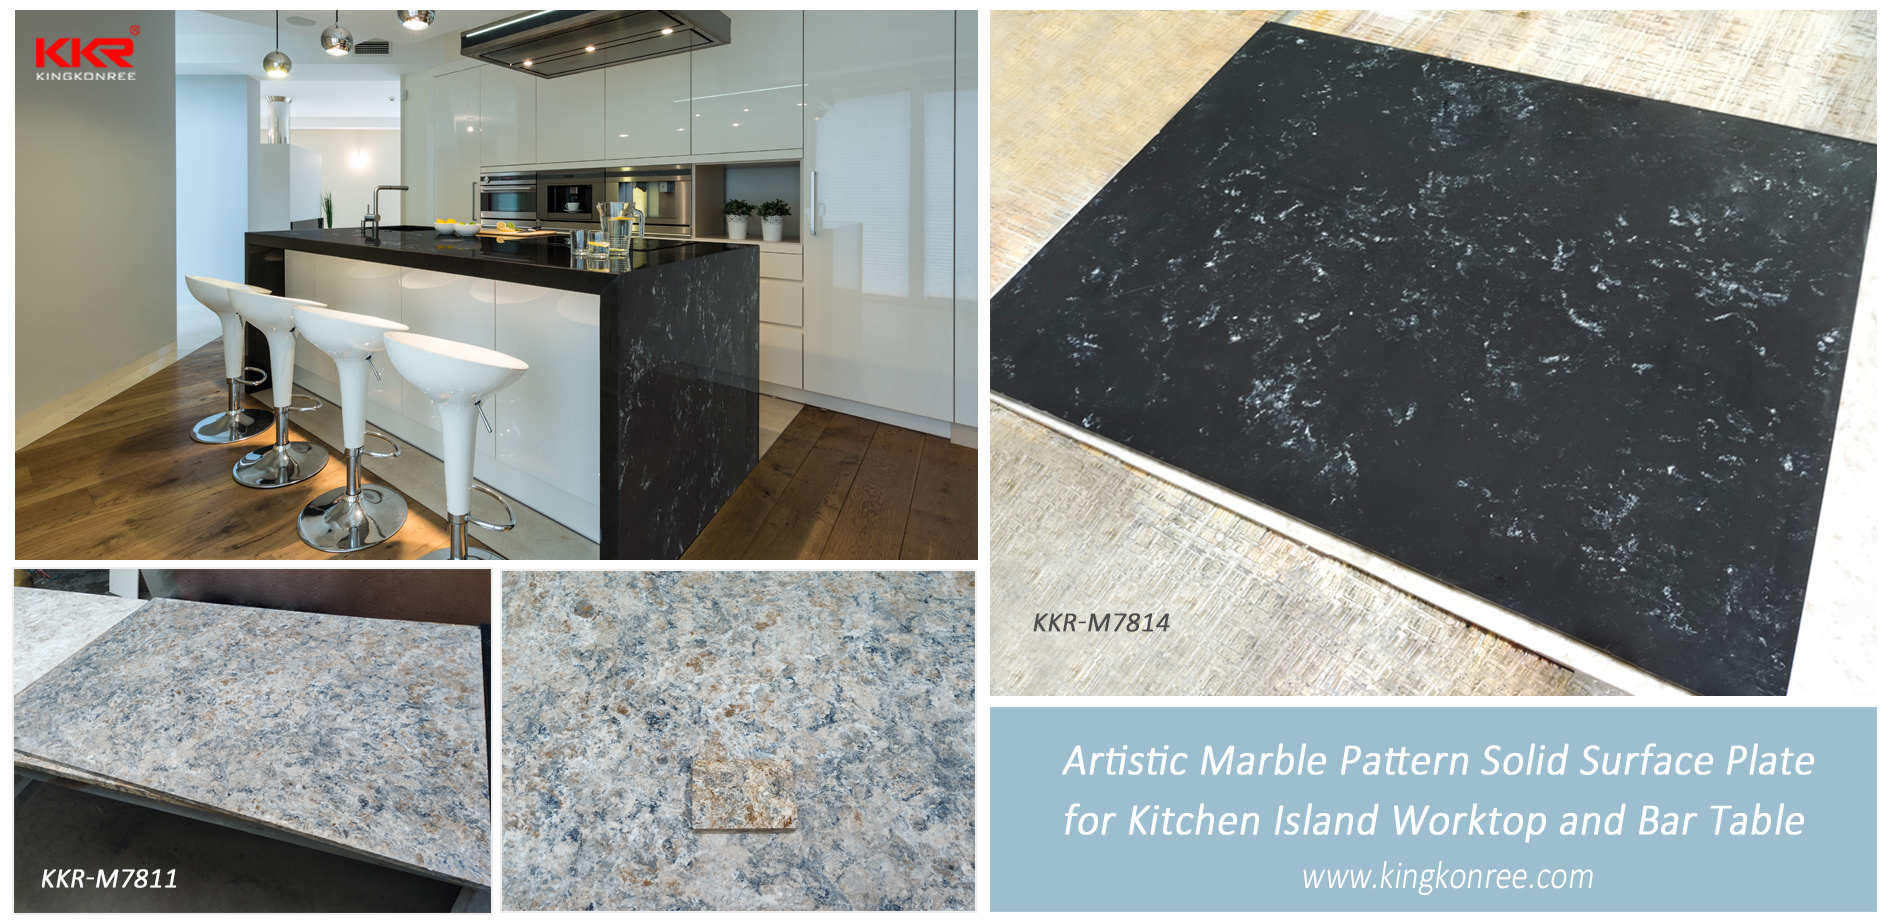 Korean Artifcical Stone 9 Pure/Modified Acrylic Solid Surface for Table  Tops/Kitchen Countertop with Smooth Veins